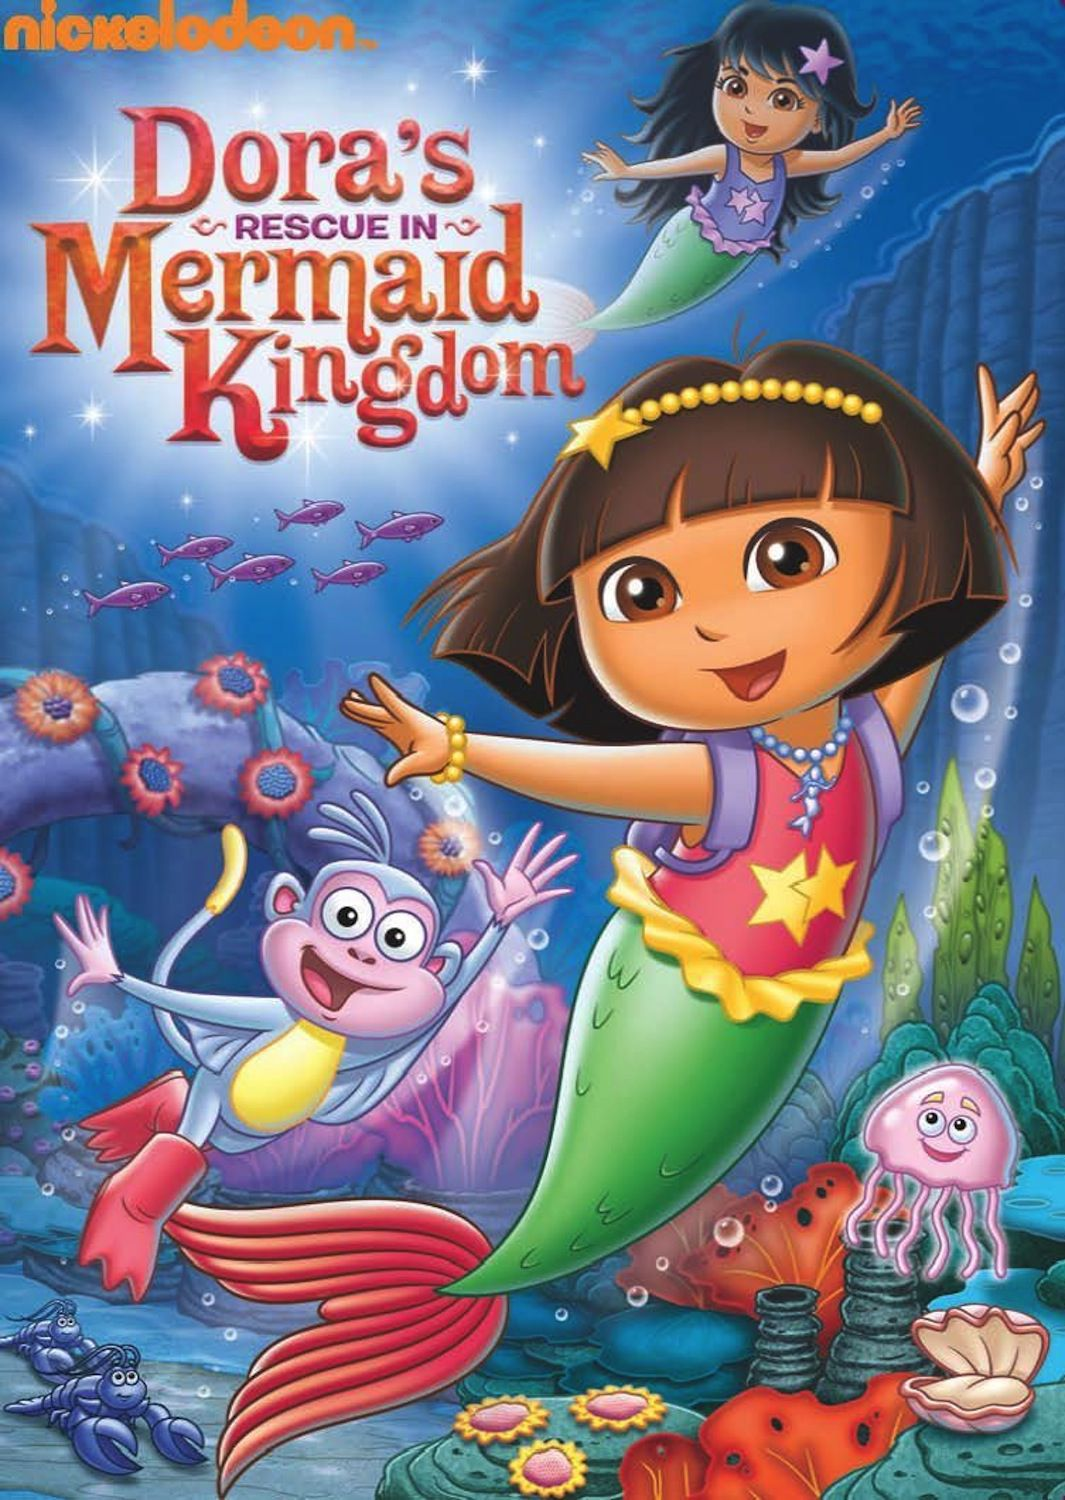 mermaid movies for kids and families